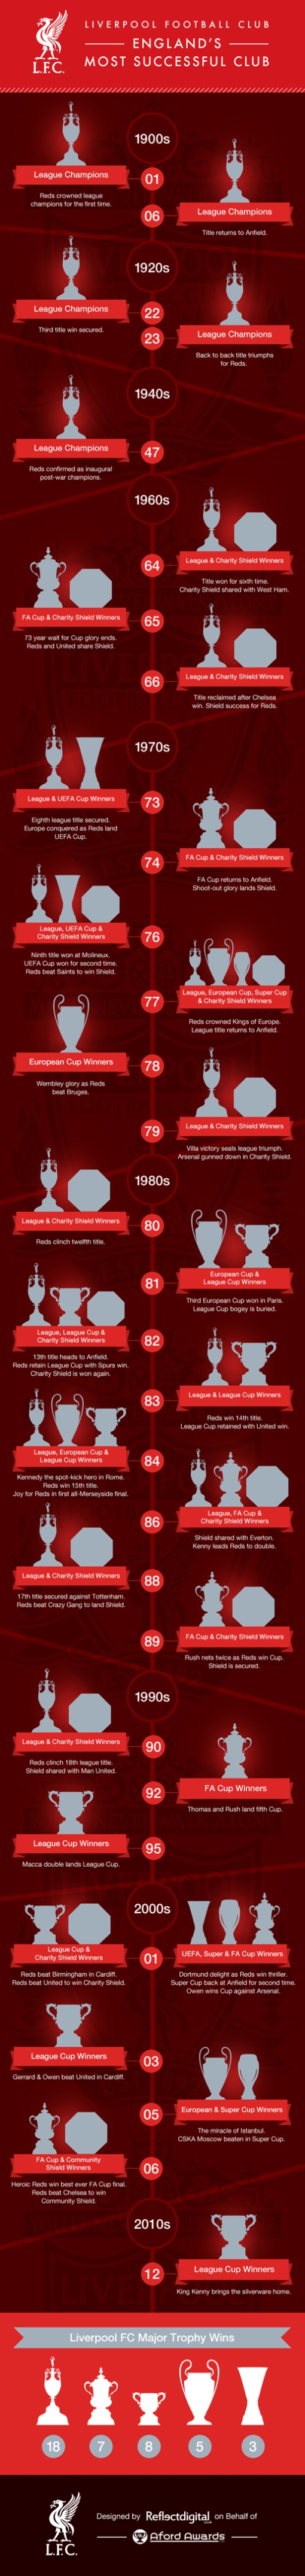 The History of Liverpool Football Trophies Infographic